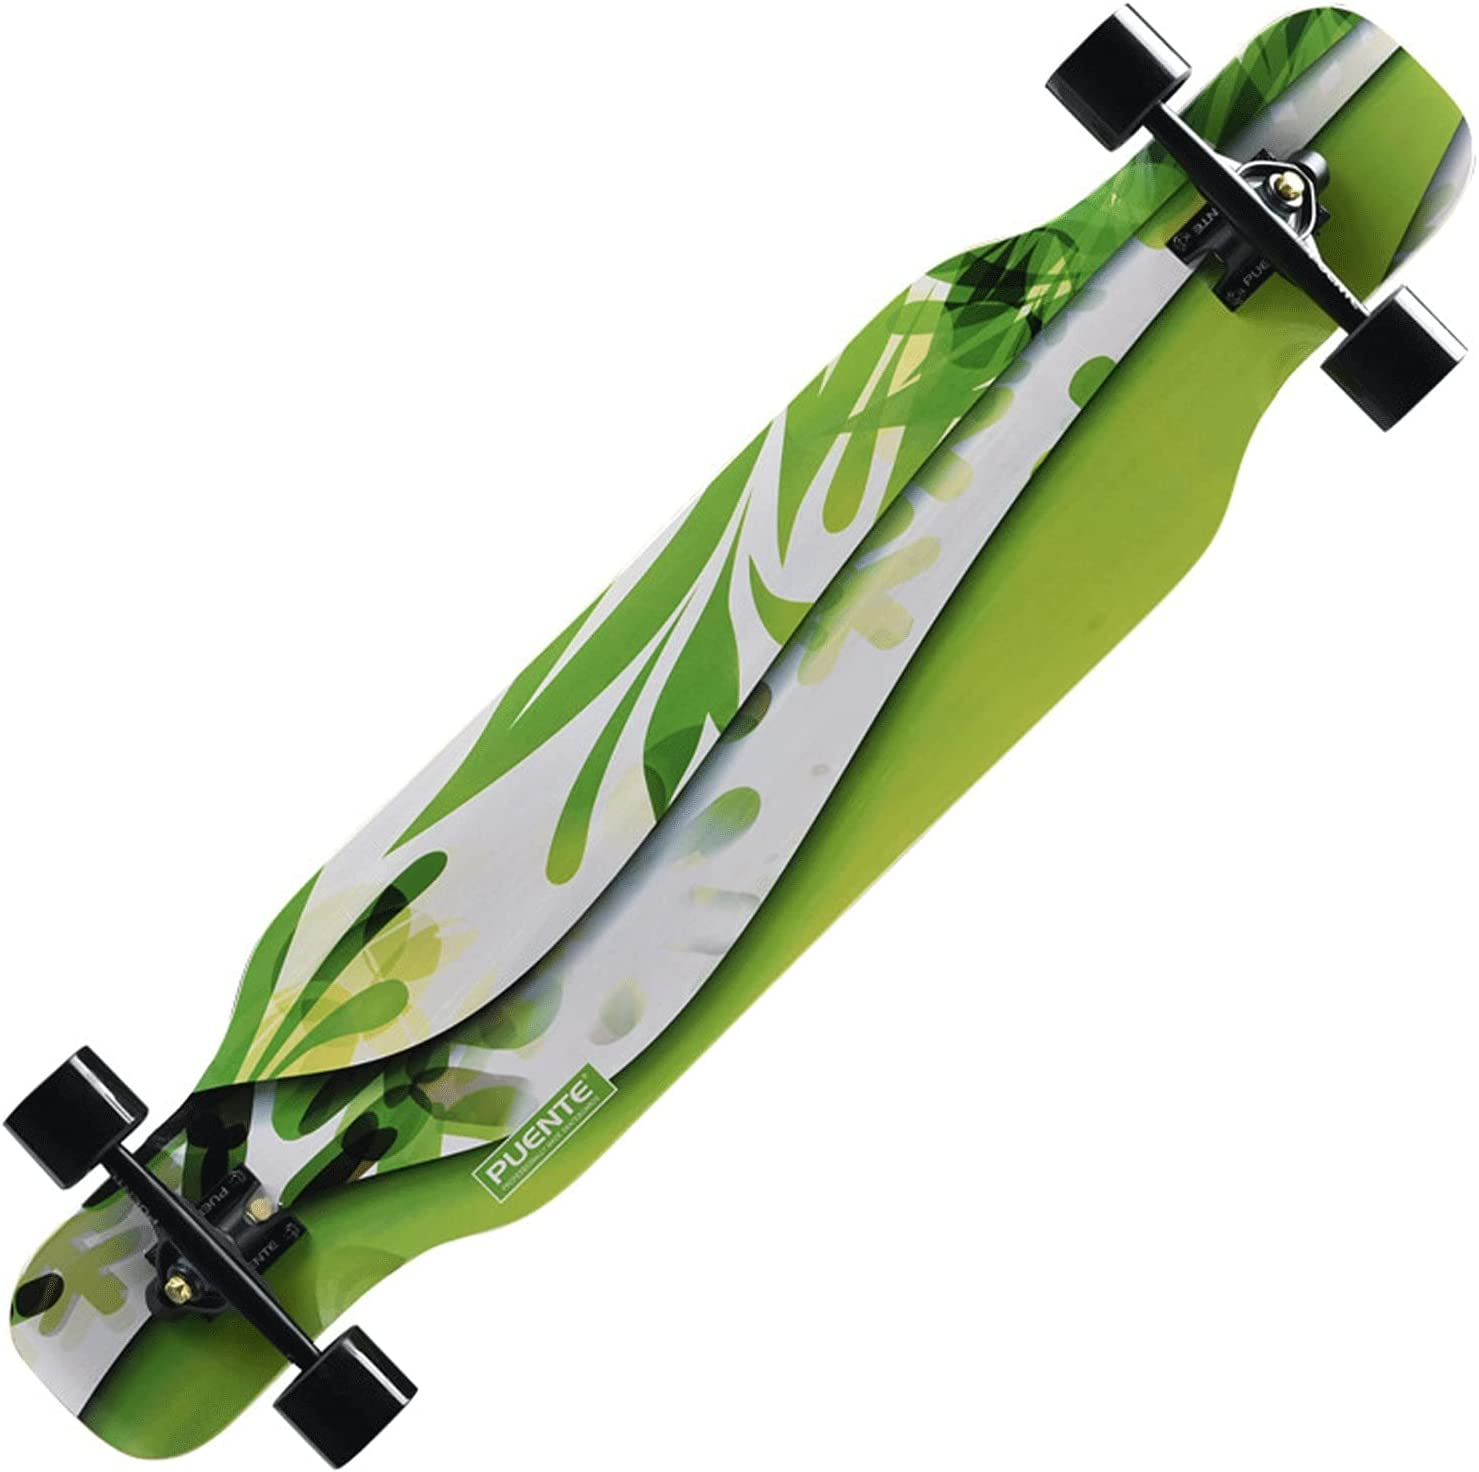 New life EEGUAI 42inch Freeride Longboard Maple Challenge the lowest price 7-Ply Natural Skateboard